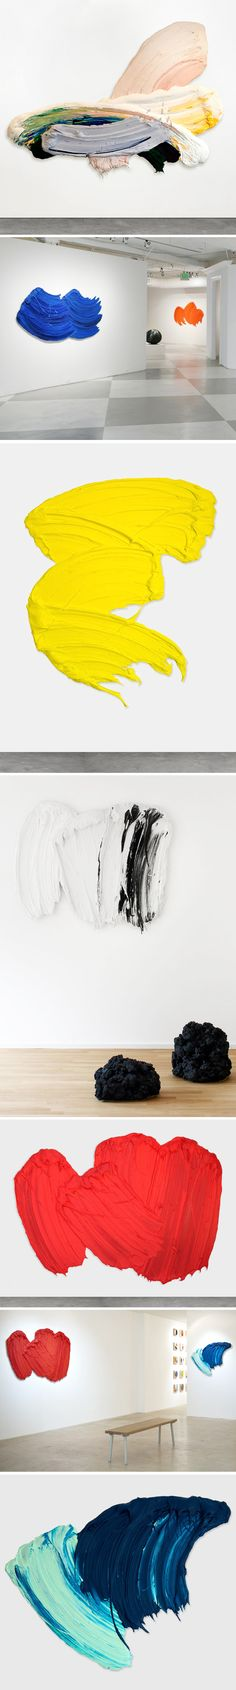 sculptures (that look like big juicy paint strokes!) by donald martiny